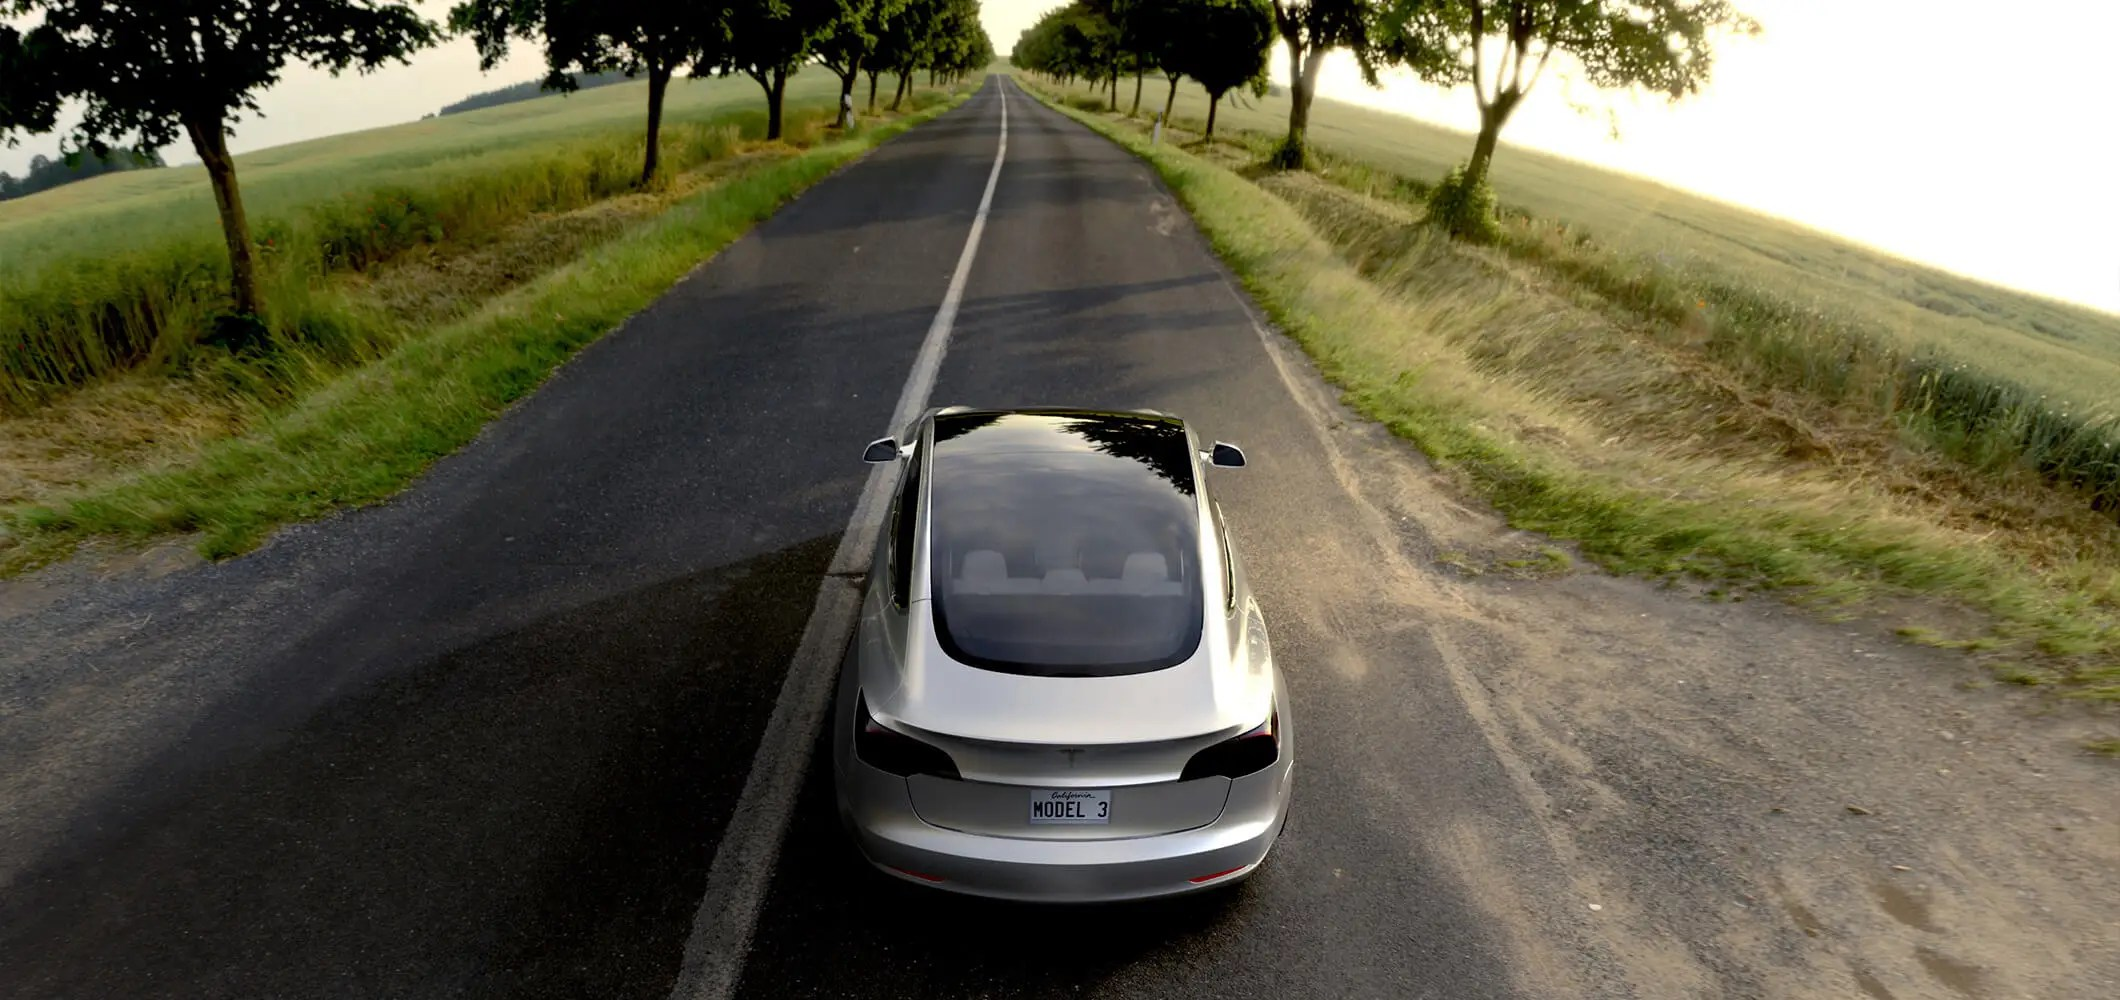 2. The Model 3 is a nimble electric car: It can go from 0 to 60 miles per hour in just six seconds.